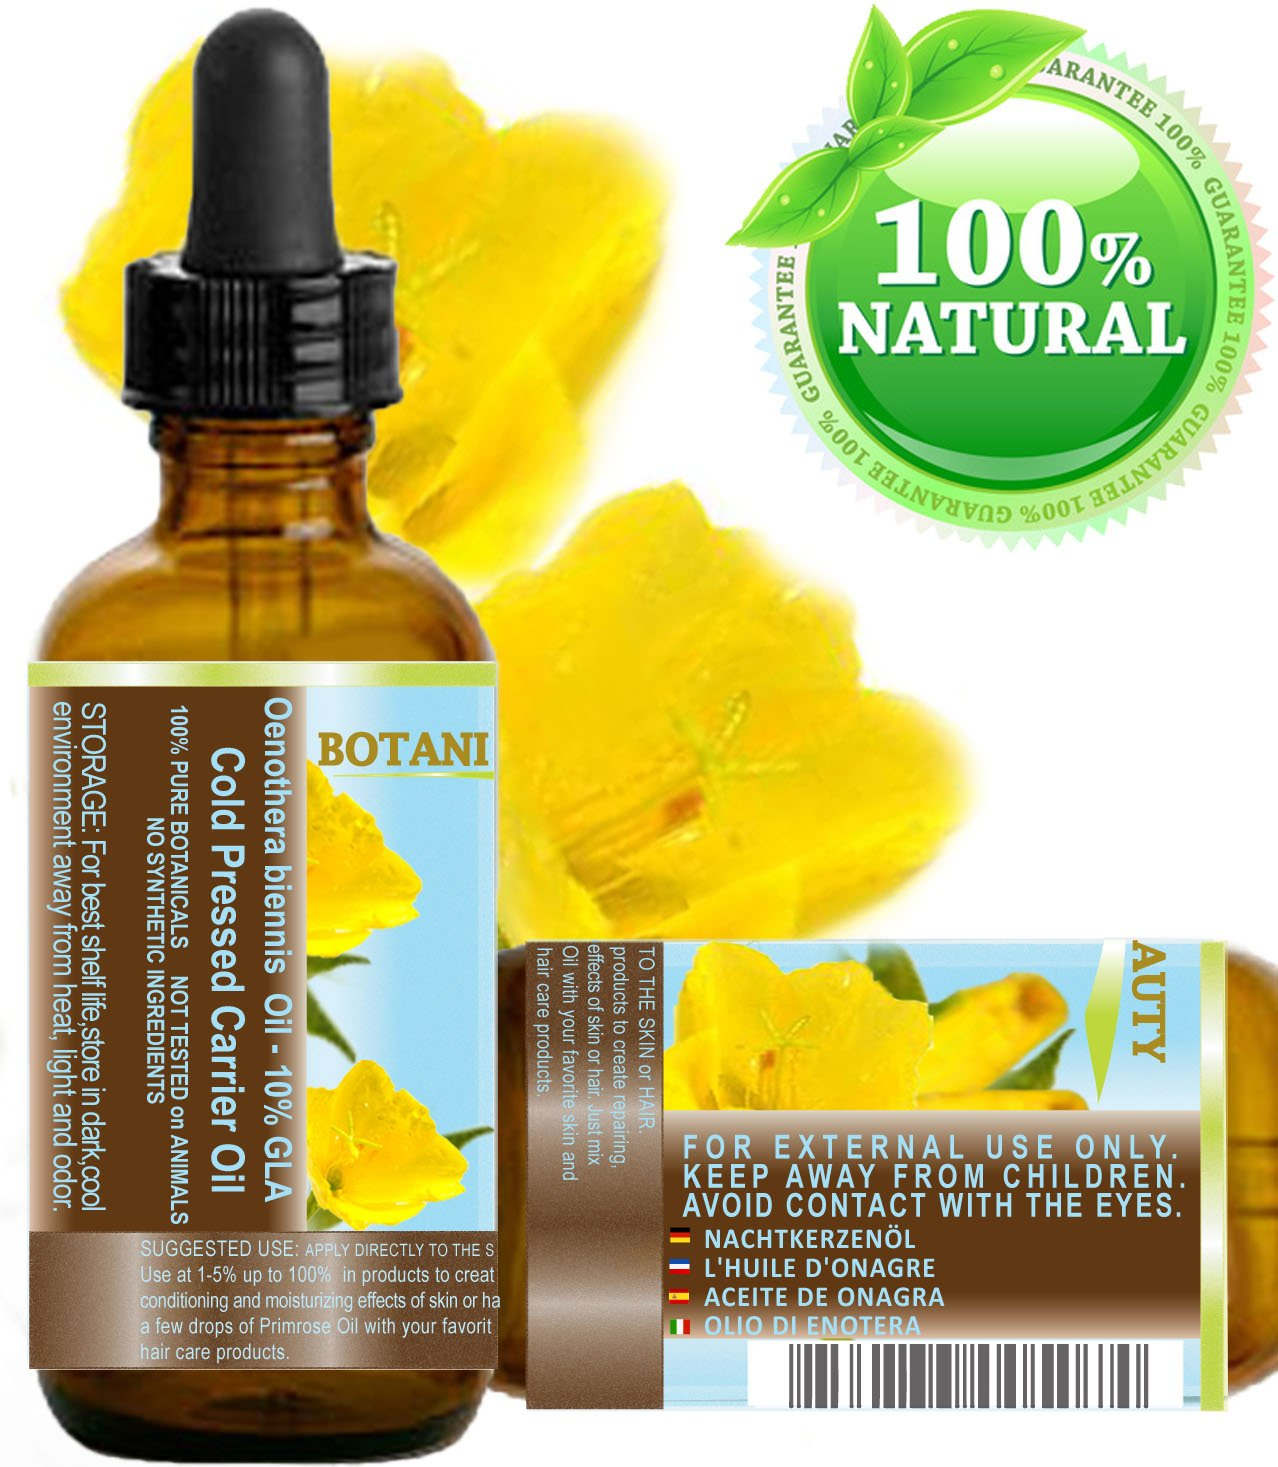 100% Pure / Natural / Undiluted / Refined / Cold Pressed Carrier Oil. Rich antioxidant to rejuvenate and moisturize the skin and hair. (0.5 Fl. oz. - 15 ml.